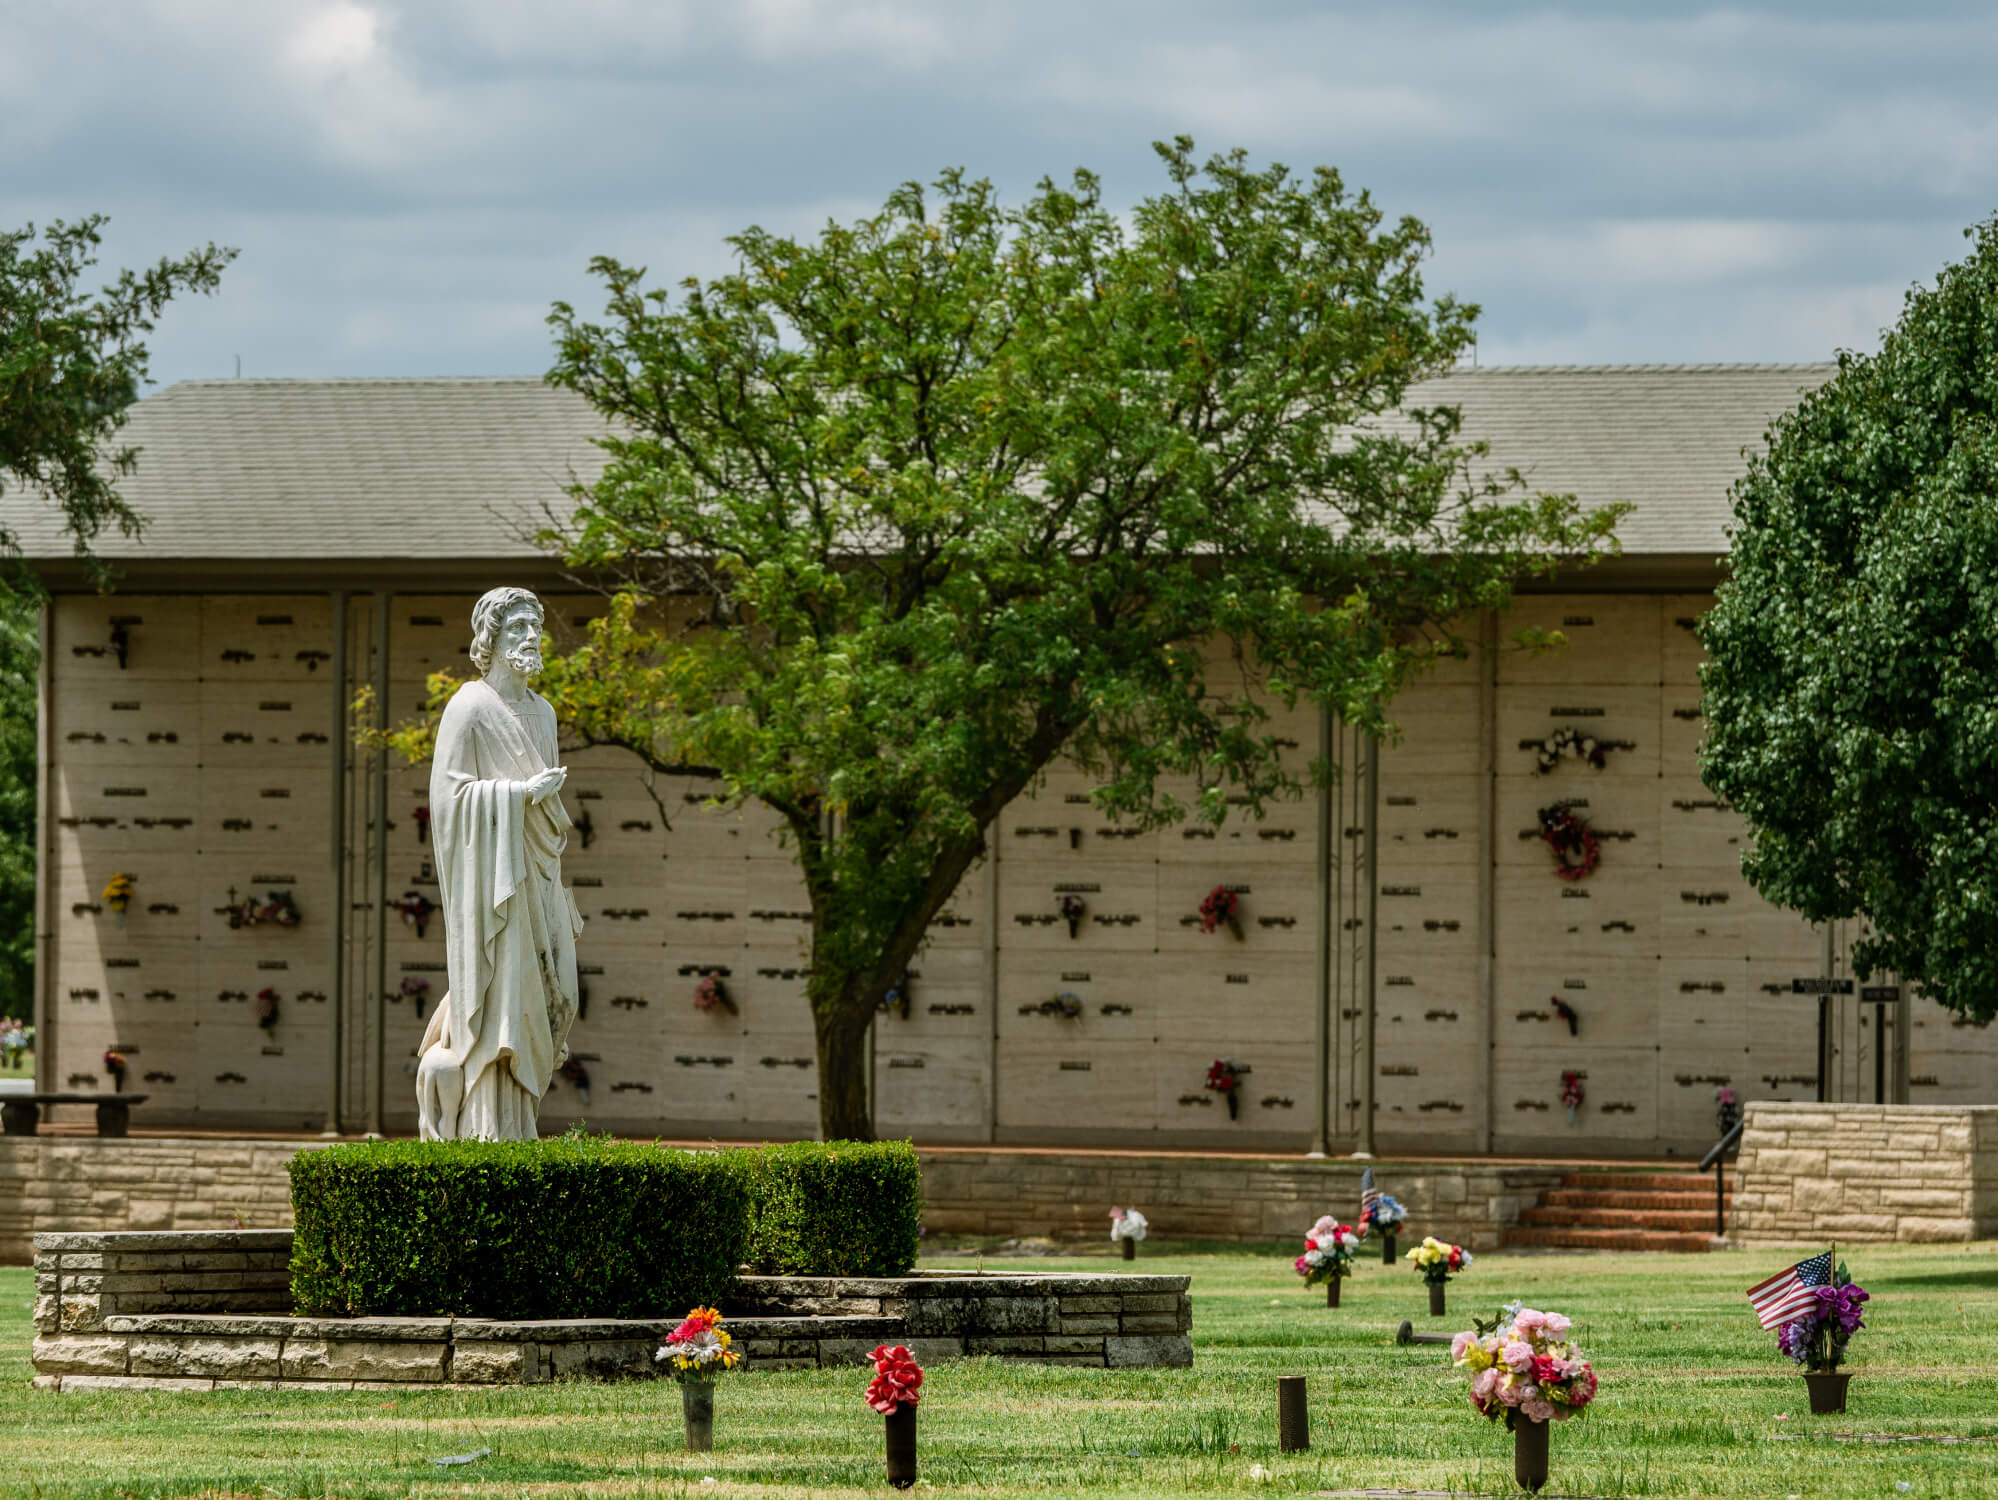 Cemetery in Oklahoma City with Statue